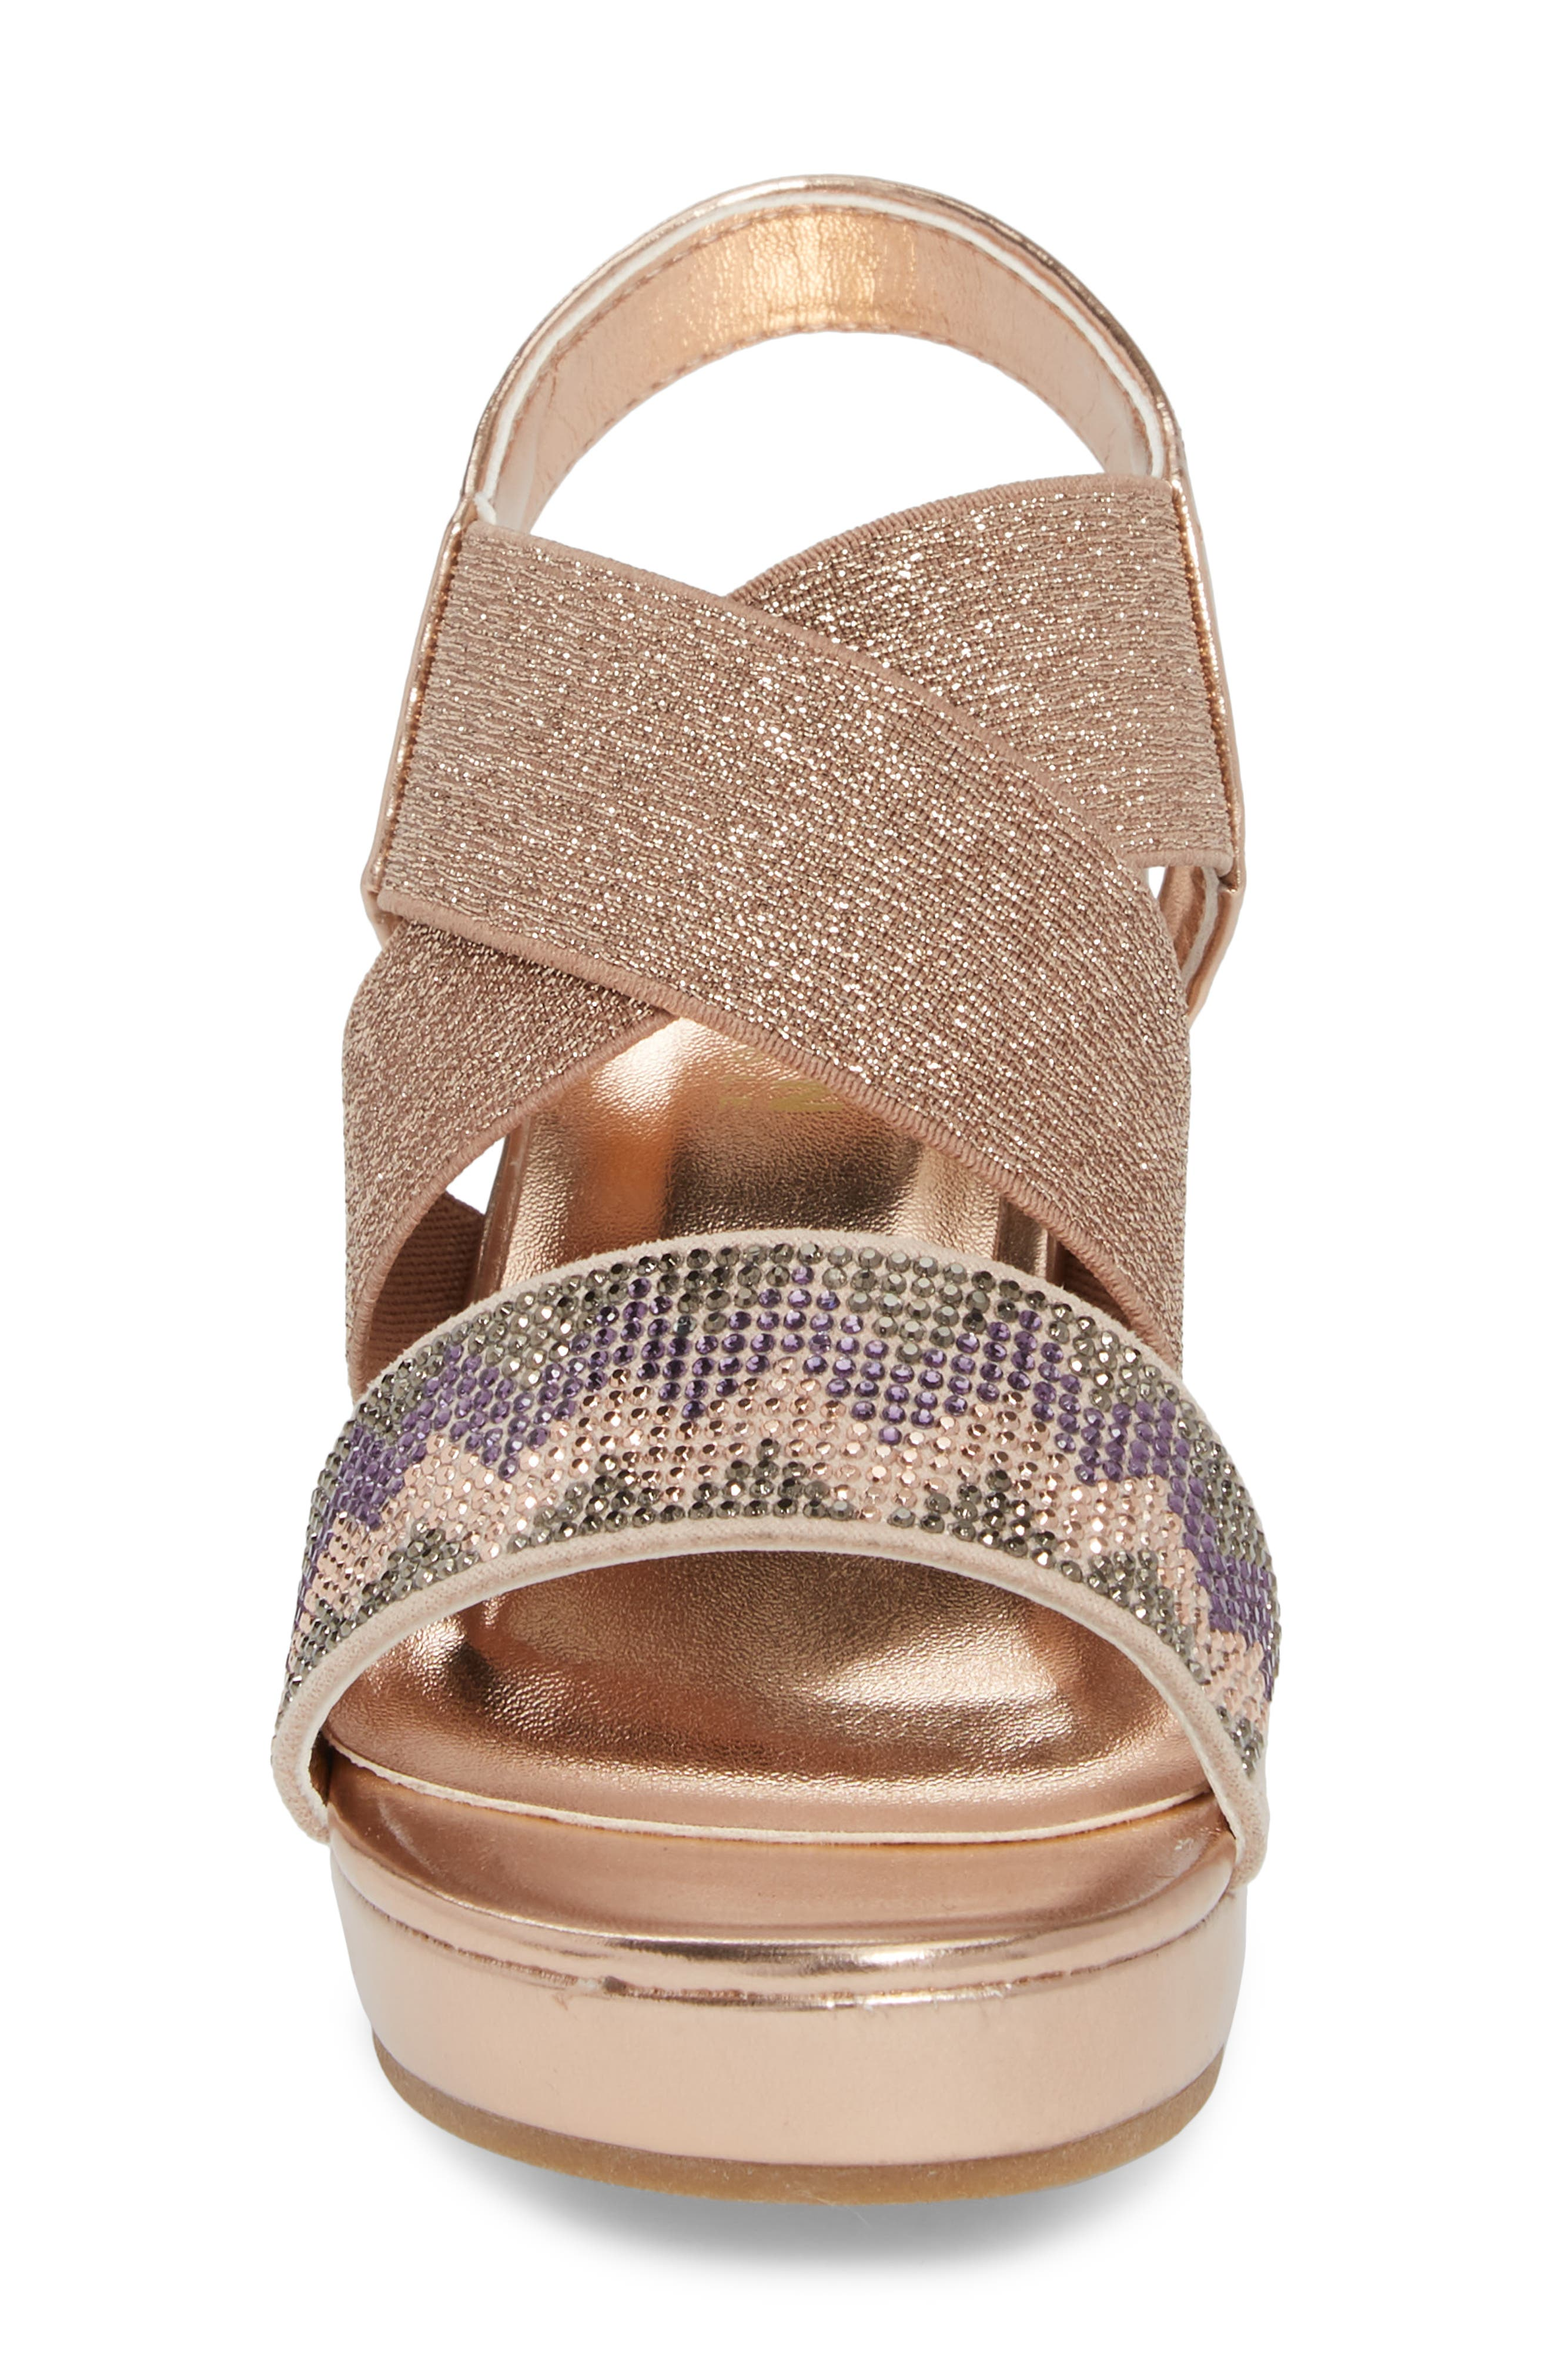 Reaction Kenneth Cole Reed Mamba Embellished Wedge Sandal,                             Alternate thumbnail 4, color,                             220